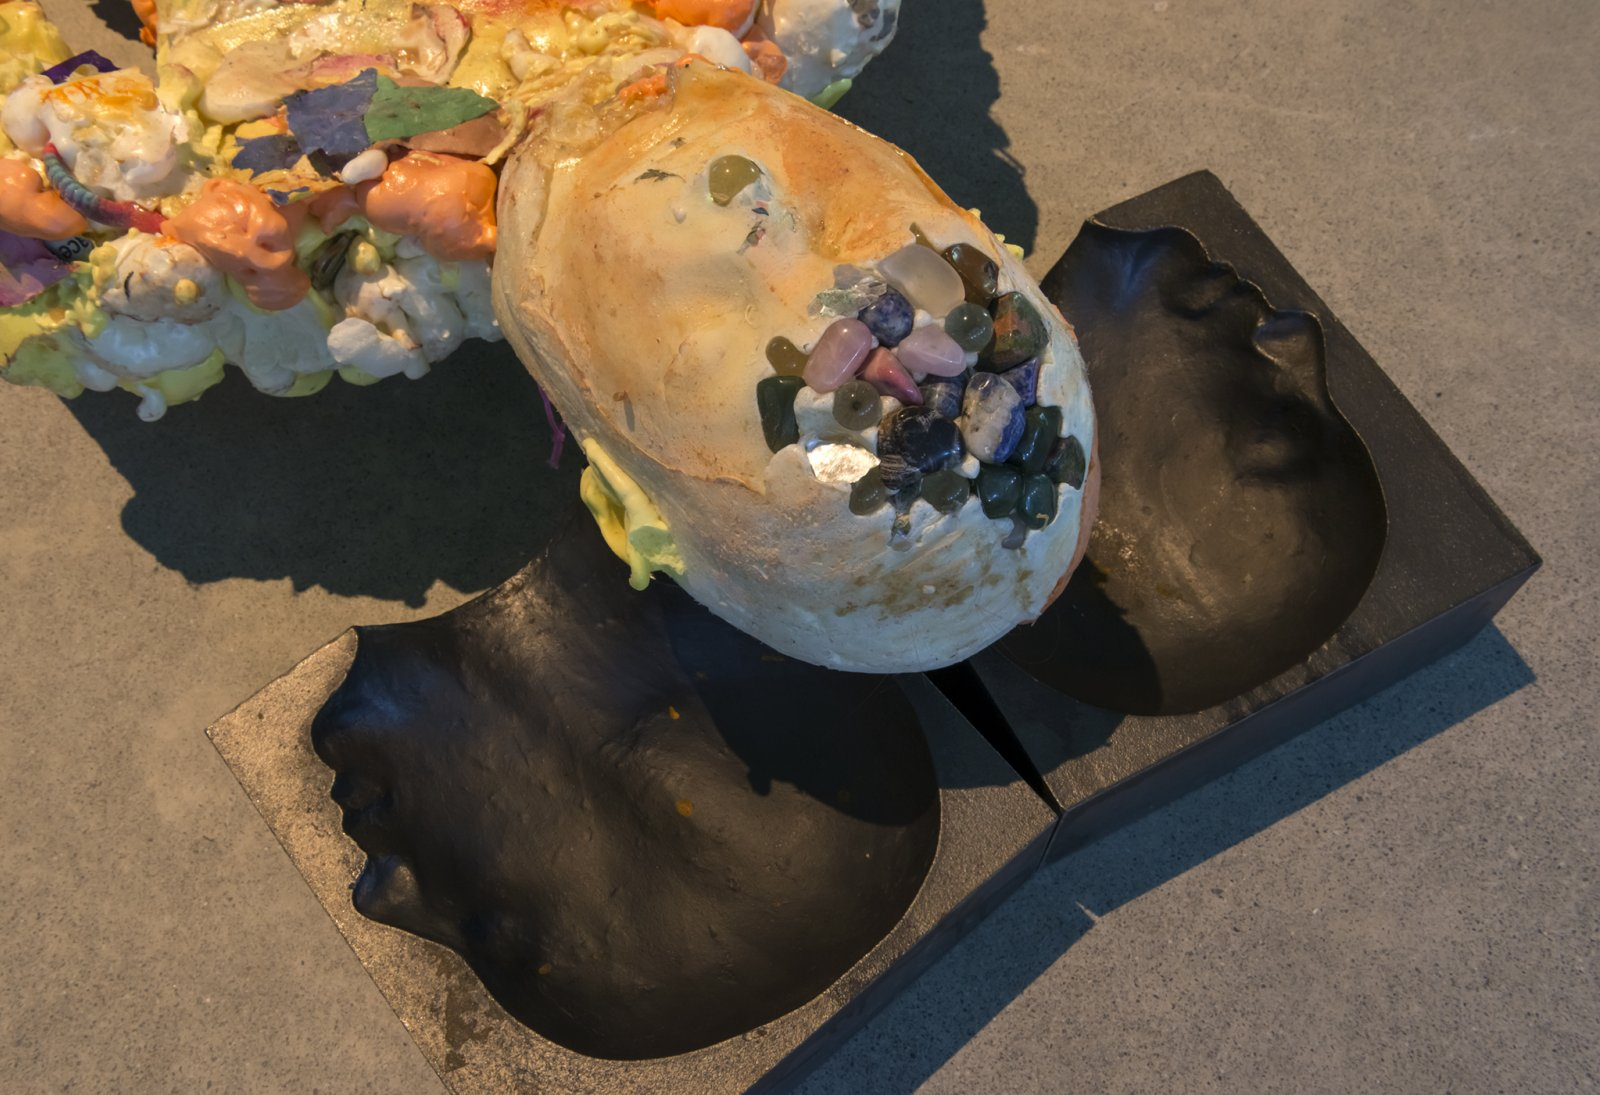 Julia Feyrer, Corpse, Maiden (detail), 2018, insulation foam, whistle, glass marbles, mineral rocks, broken rulers, coins, lenses, blackberry, mugwort, rope, hinges, gummy worms, plaster cast hands and feet, soil, aluminum armature, latex, pigment, paper, cast iron, miscellaneous materials, 71 x 28 x 13 in. (180 x 71 x 33 cm)